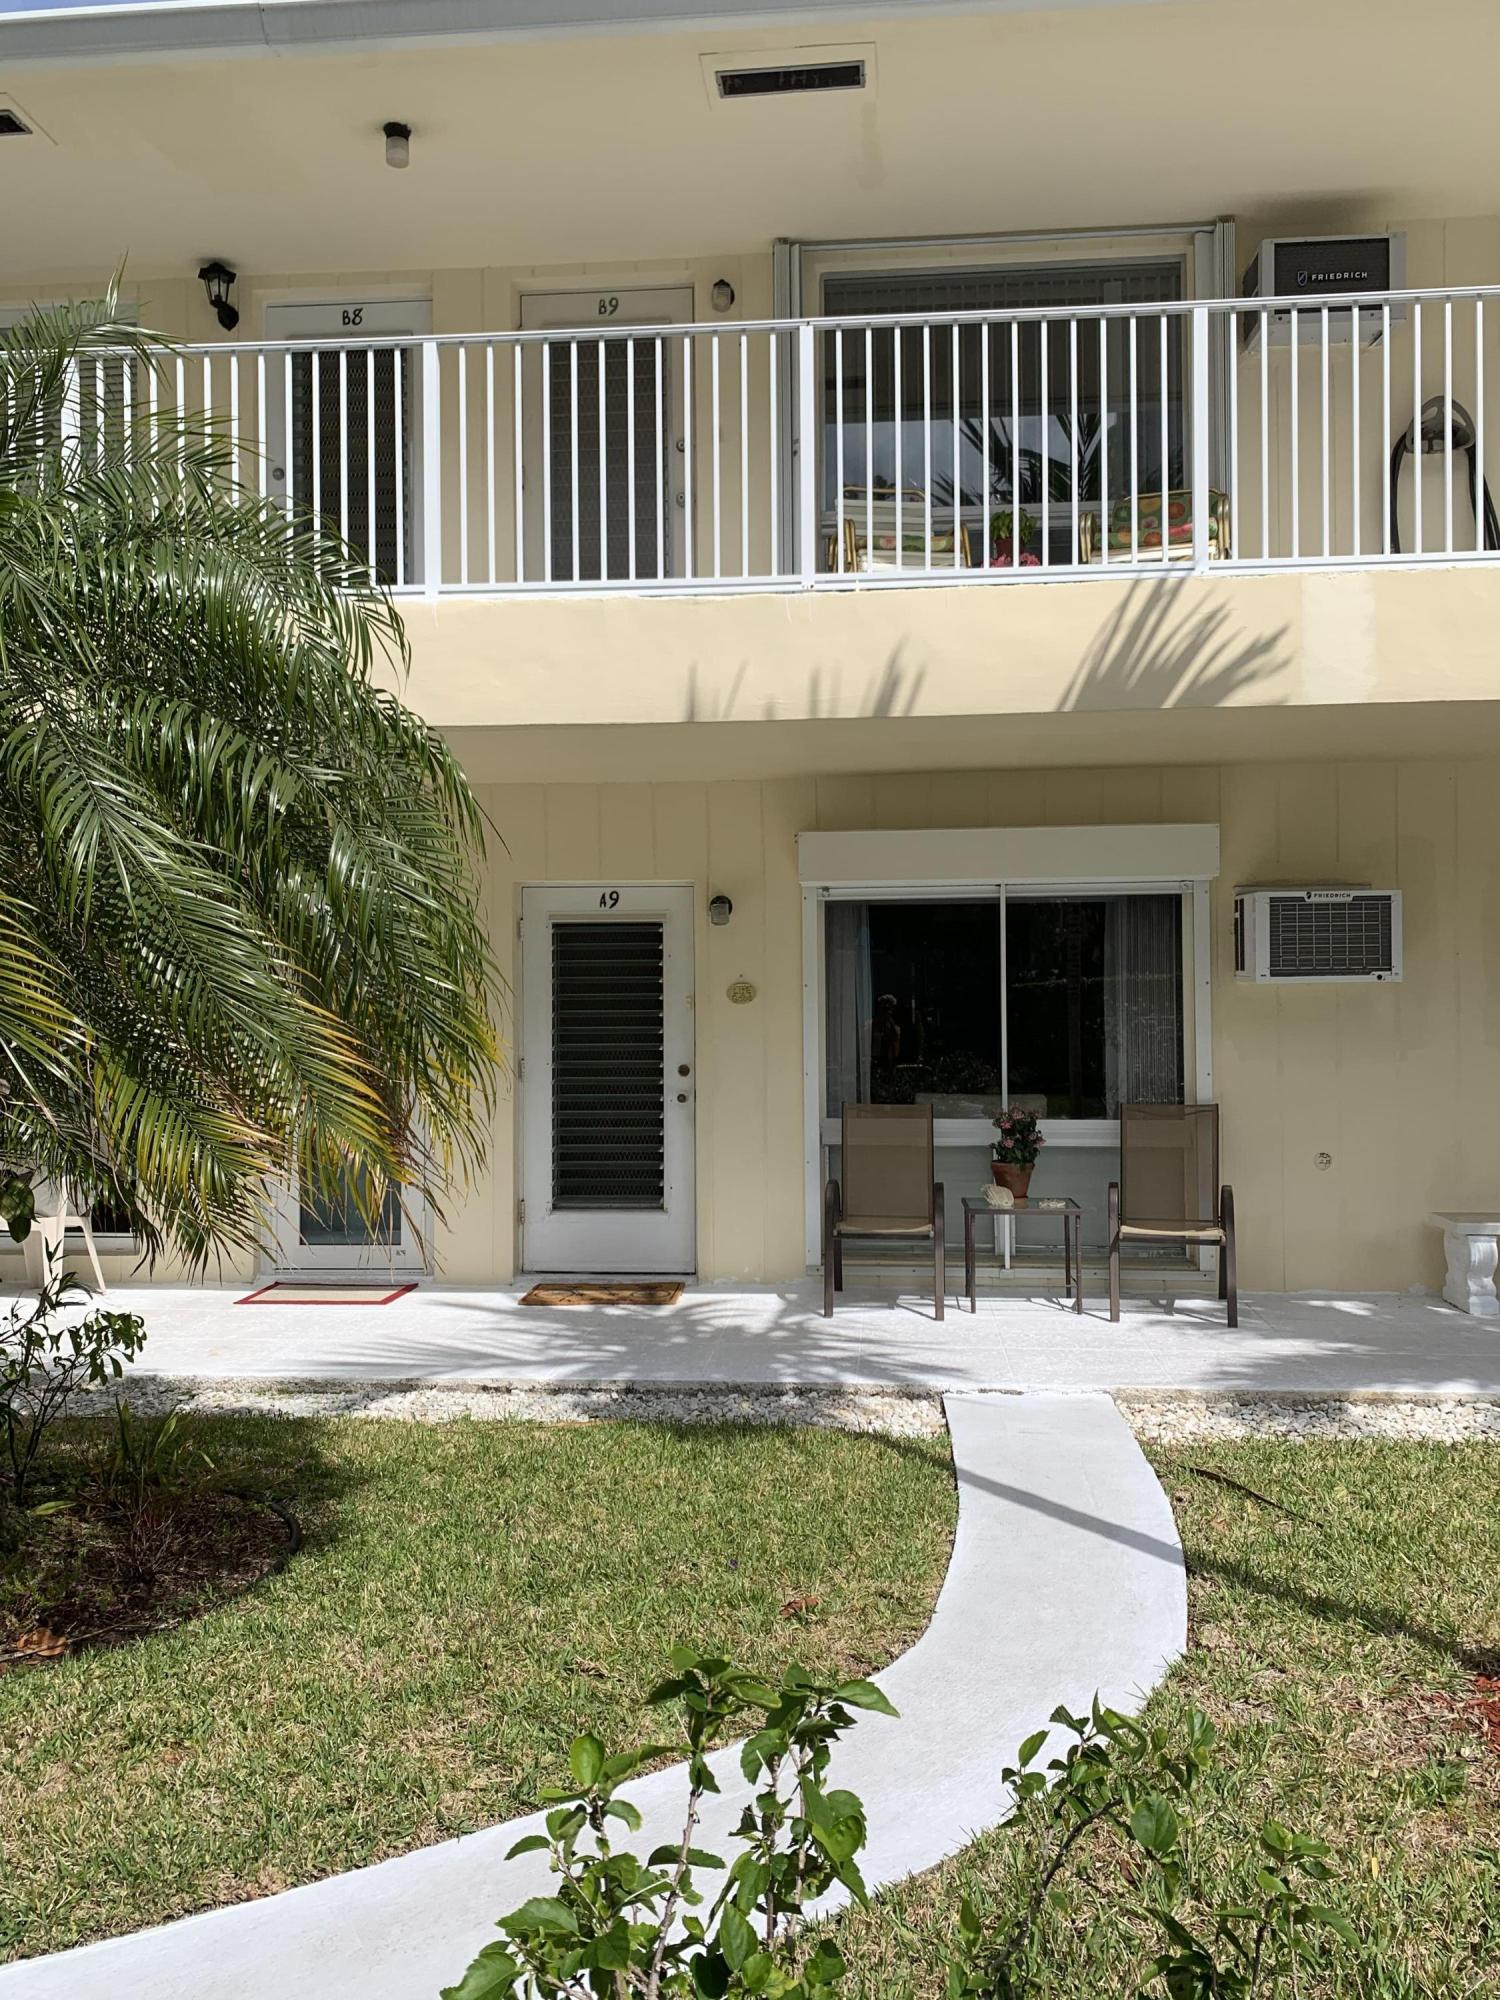 3201 SE 10th Unit A9, Pompano Beach, Florida 33062